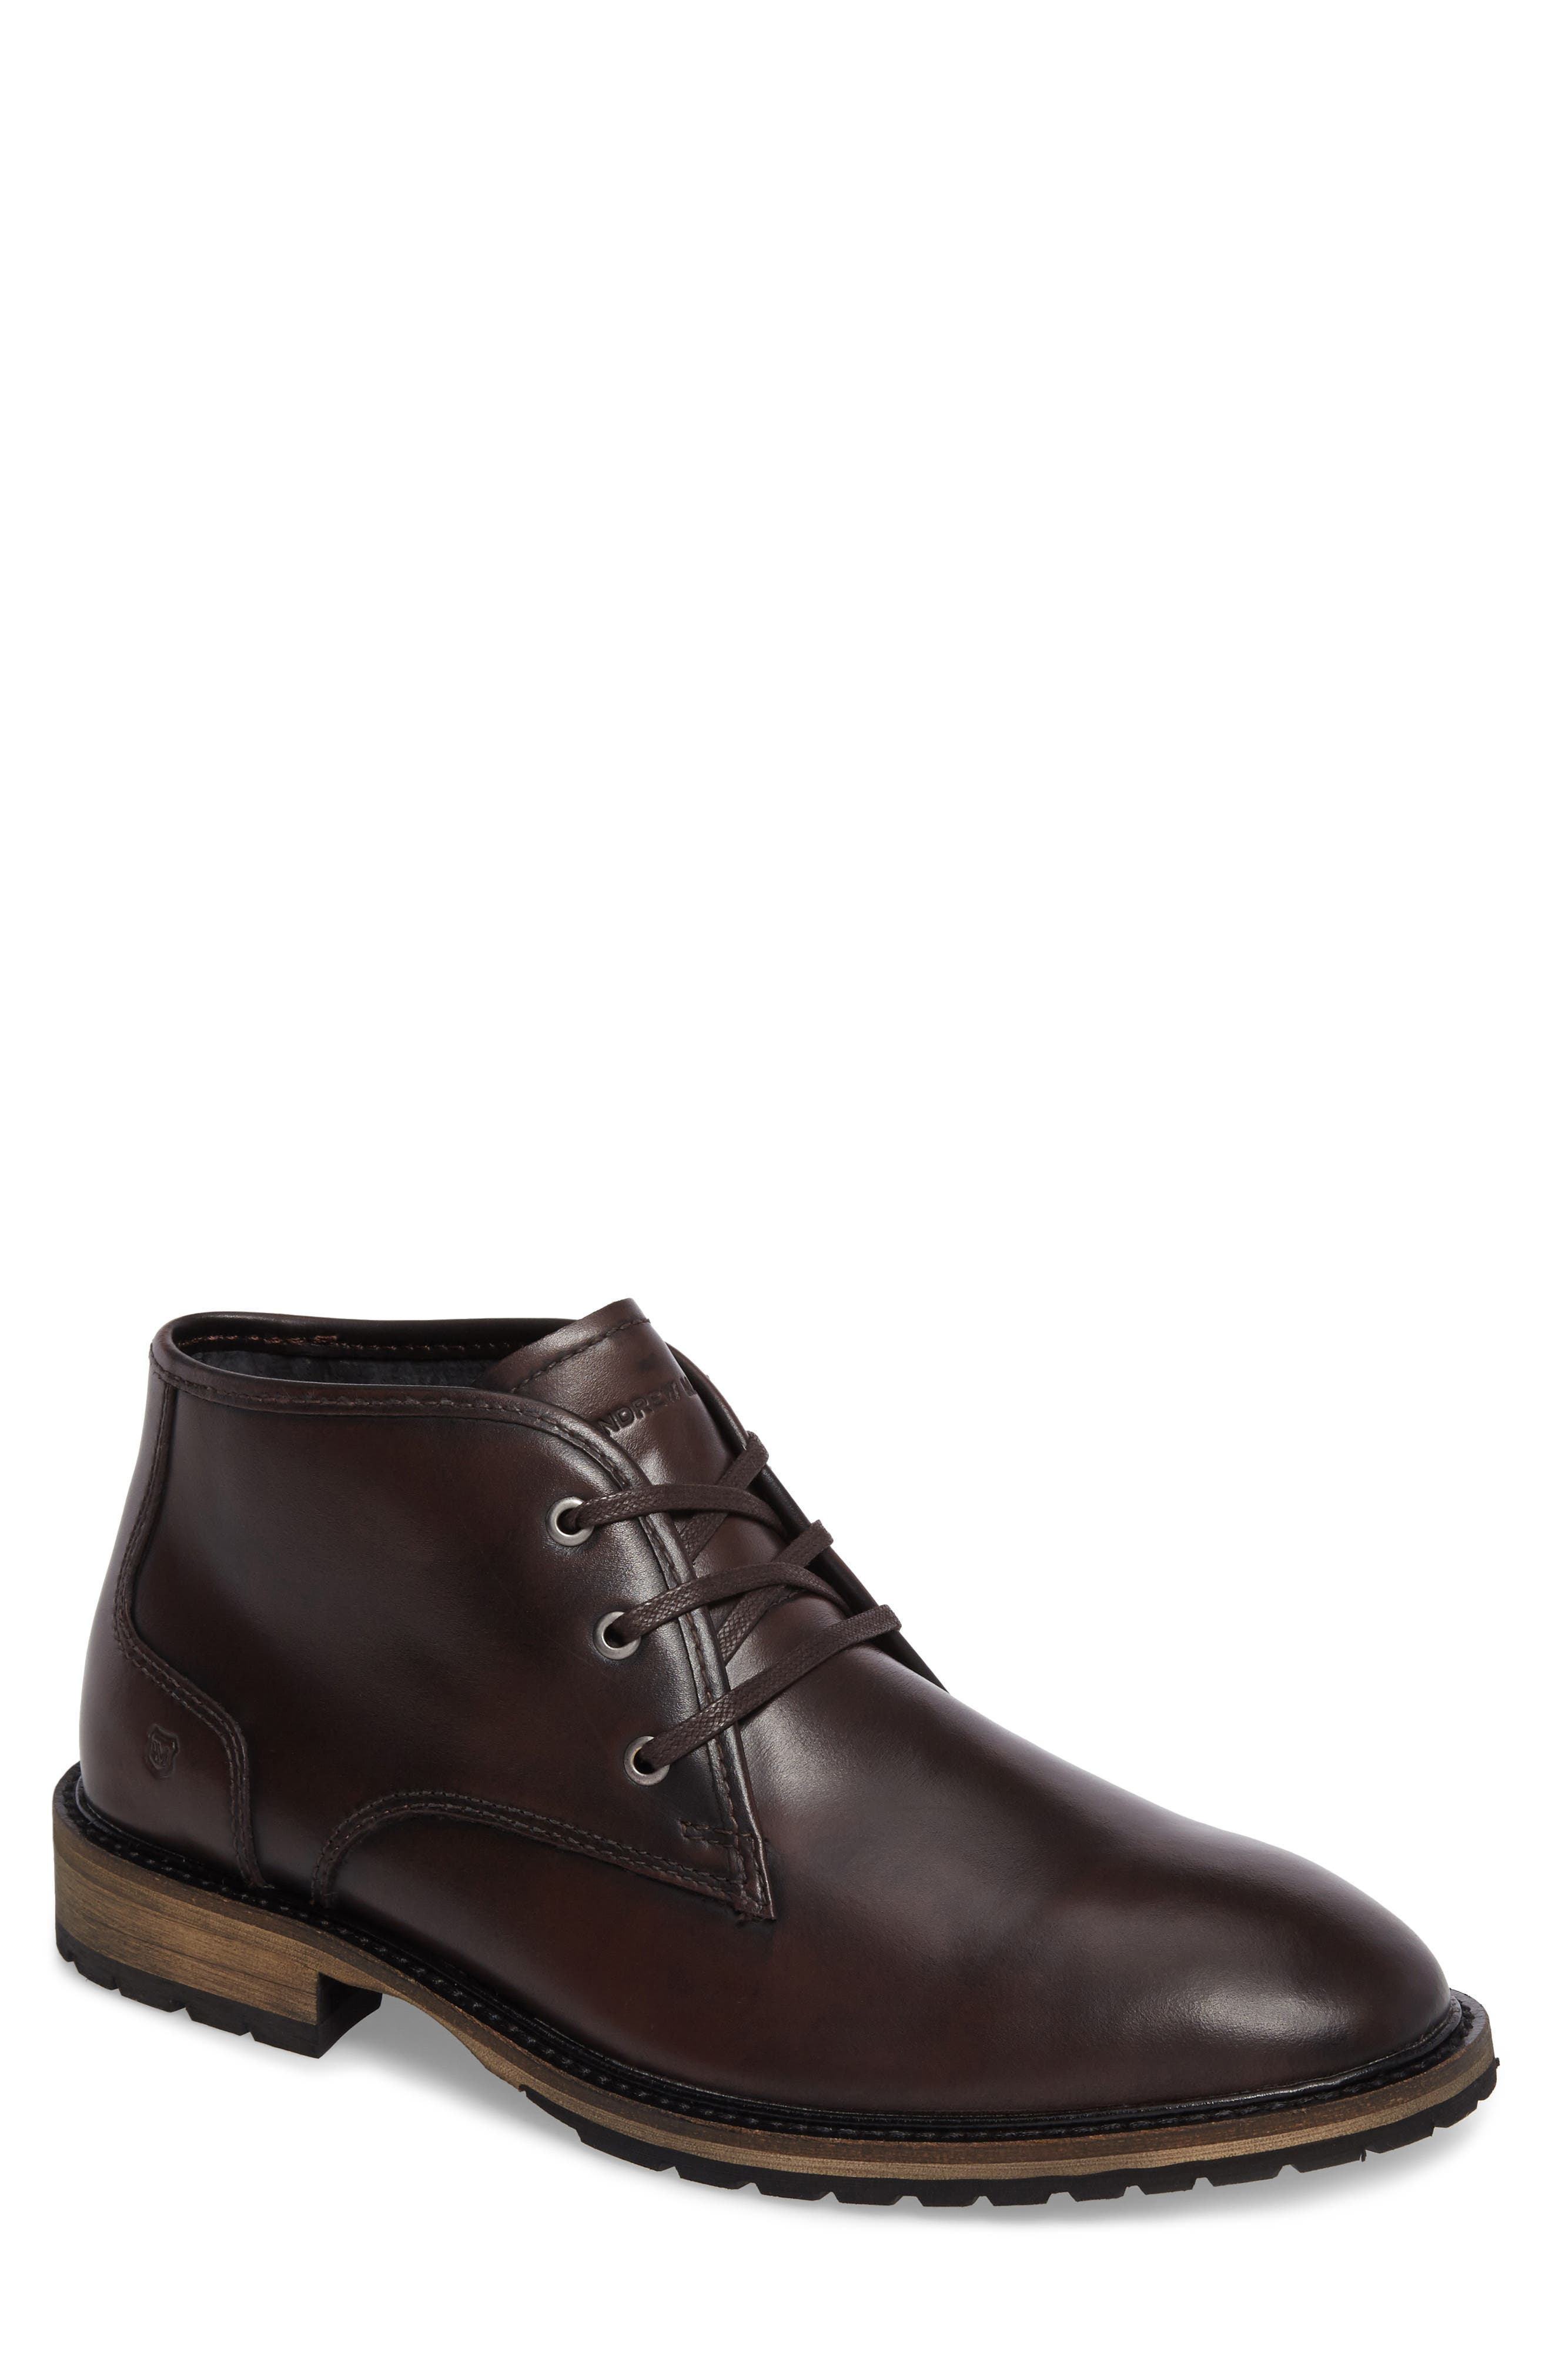 Alternate Image 1 Selected - Andrew Marc Woodside Chukka Boot (Men)